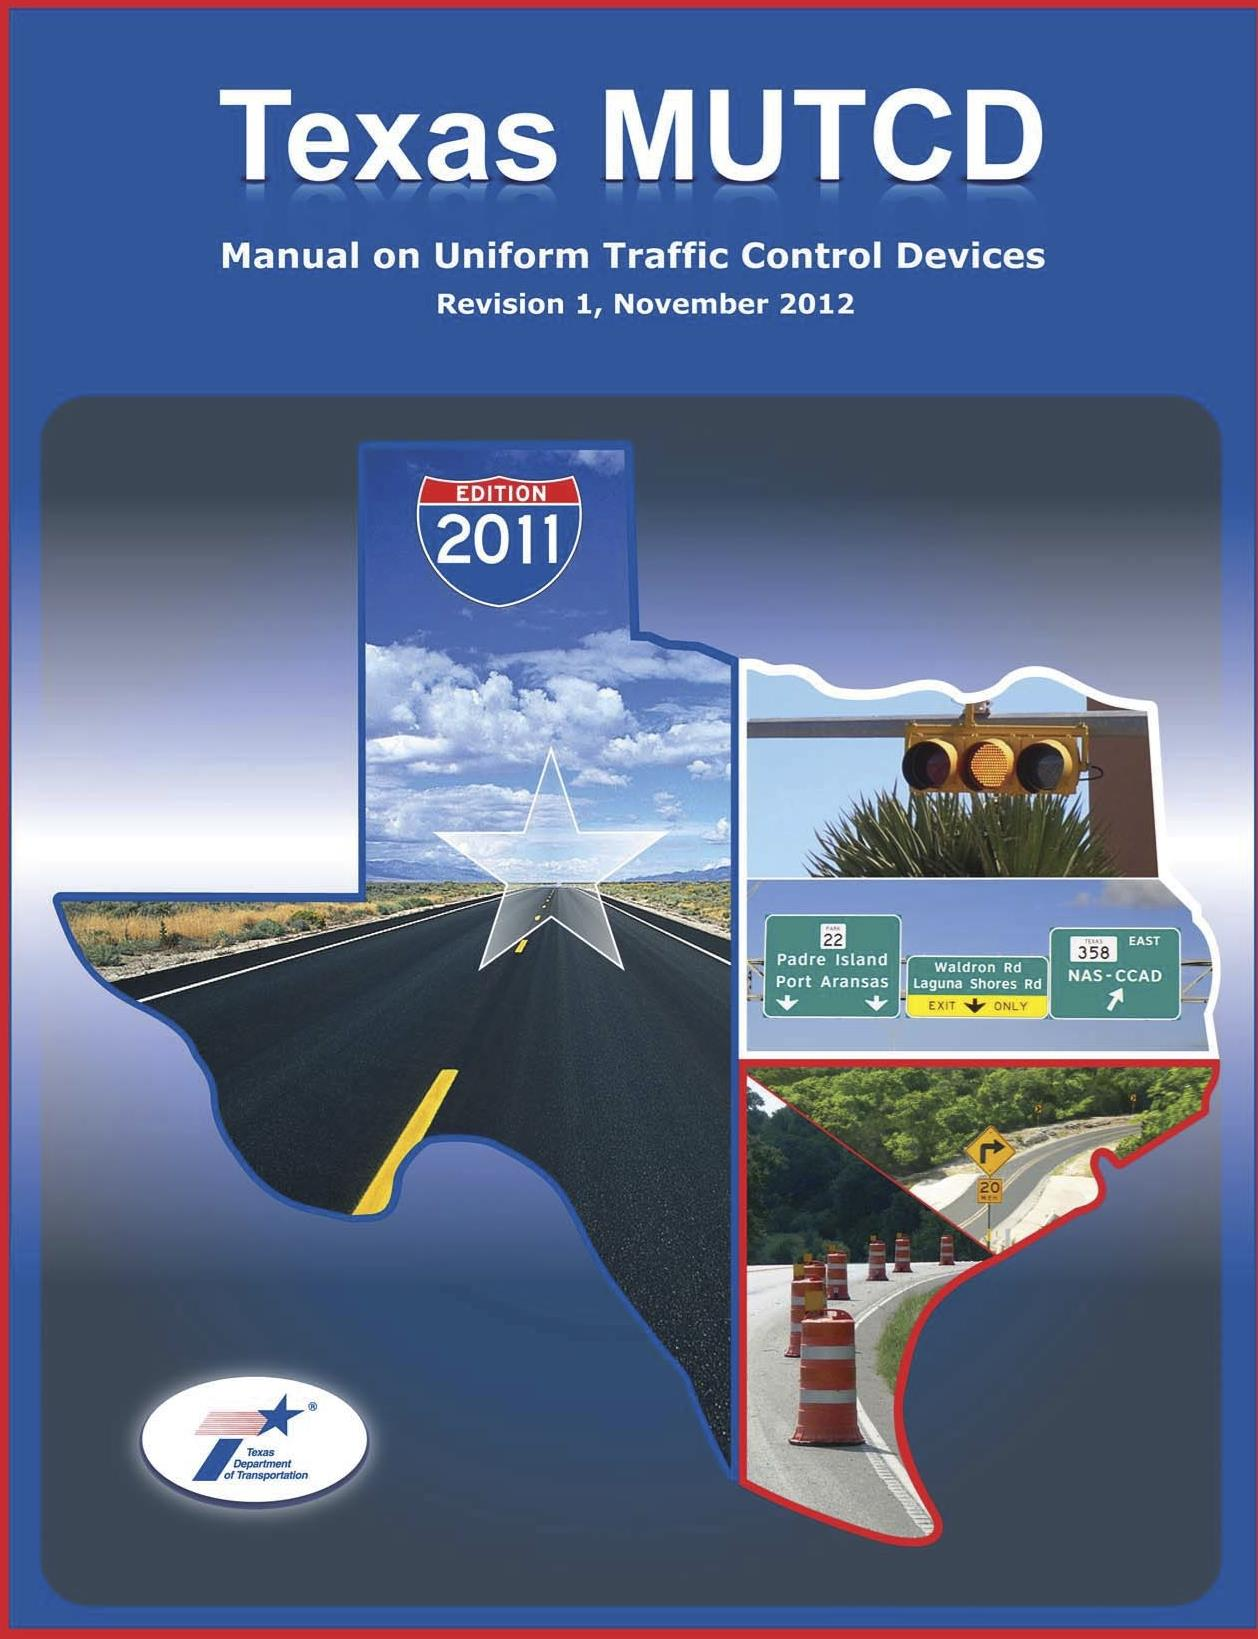 Lesson 2 Manual on Uniform Traffic Control Devices (MUTCD)